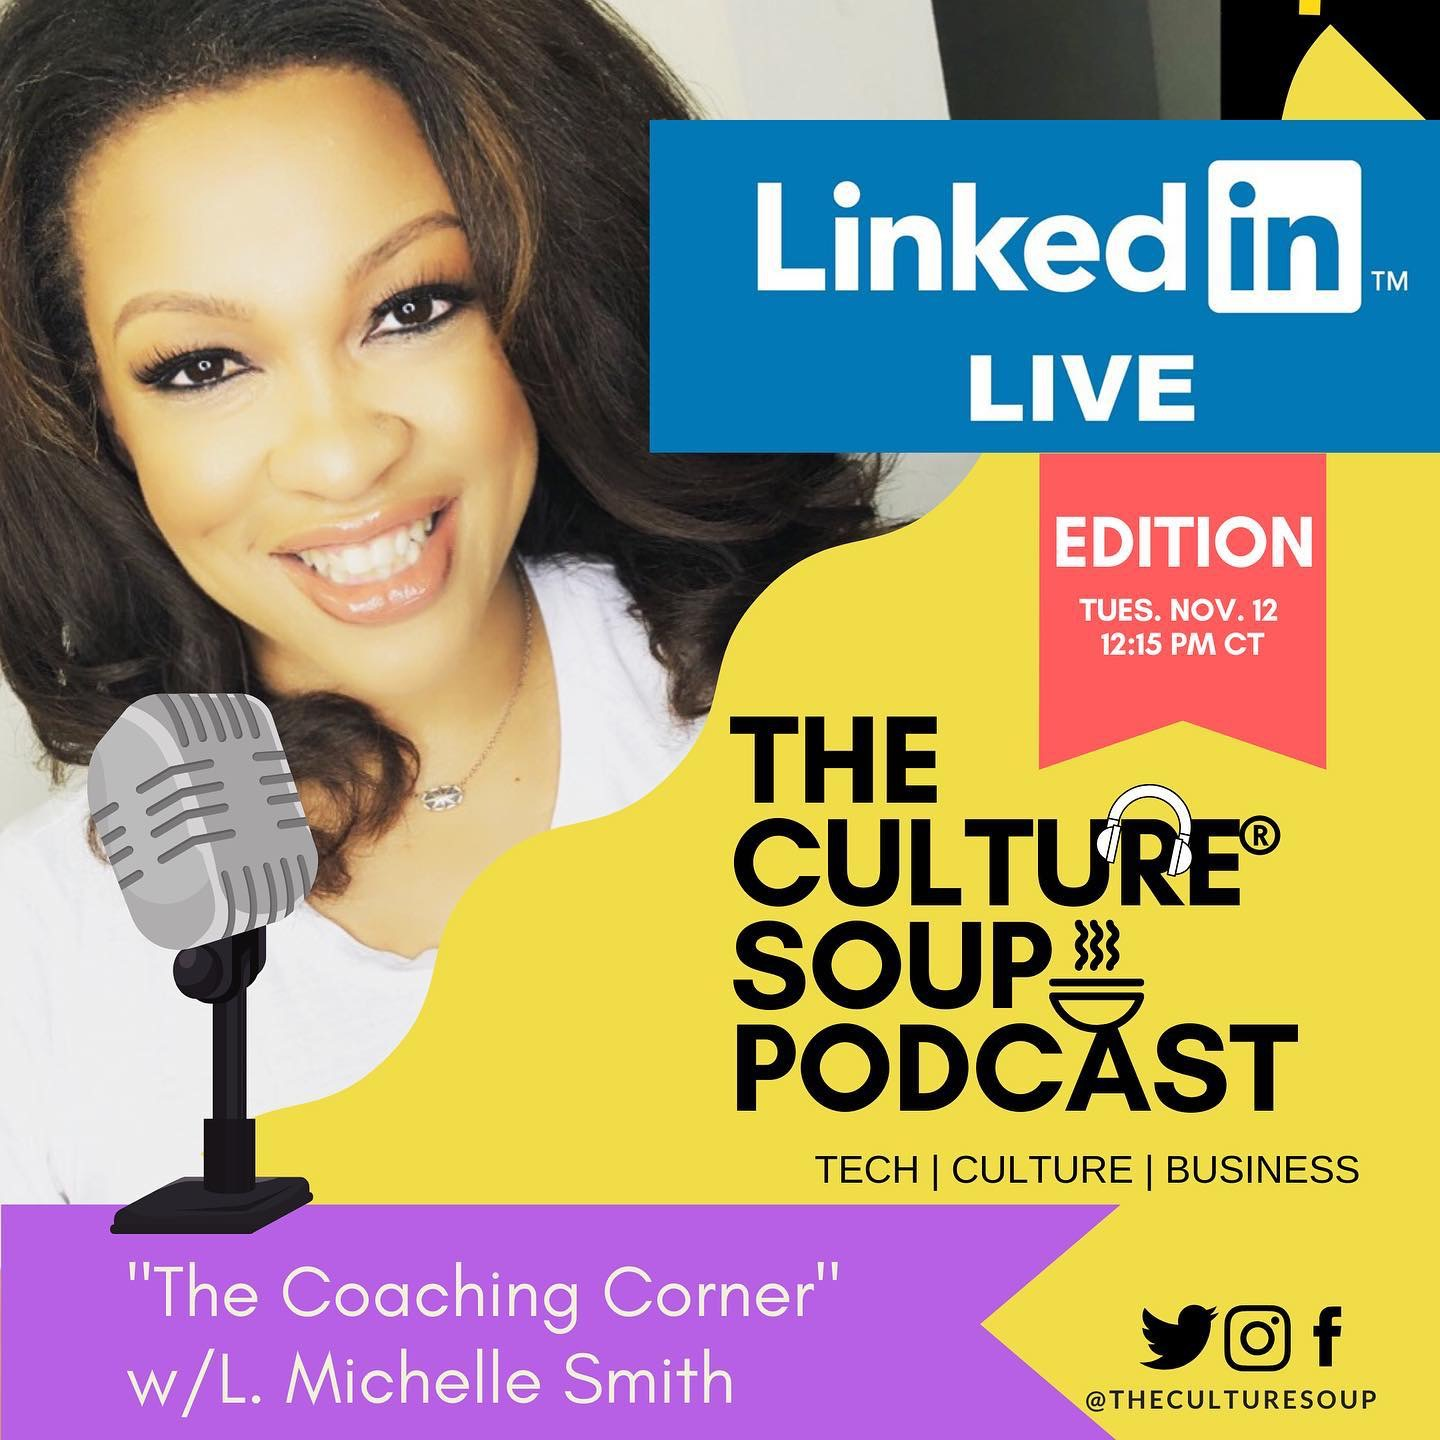 Ep 96: The Coaching Corner, Let's Talk About Change